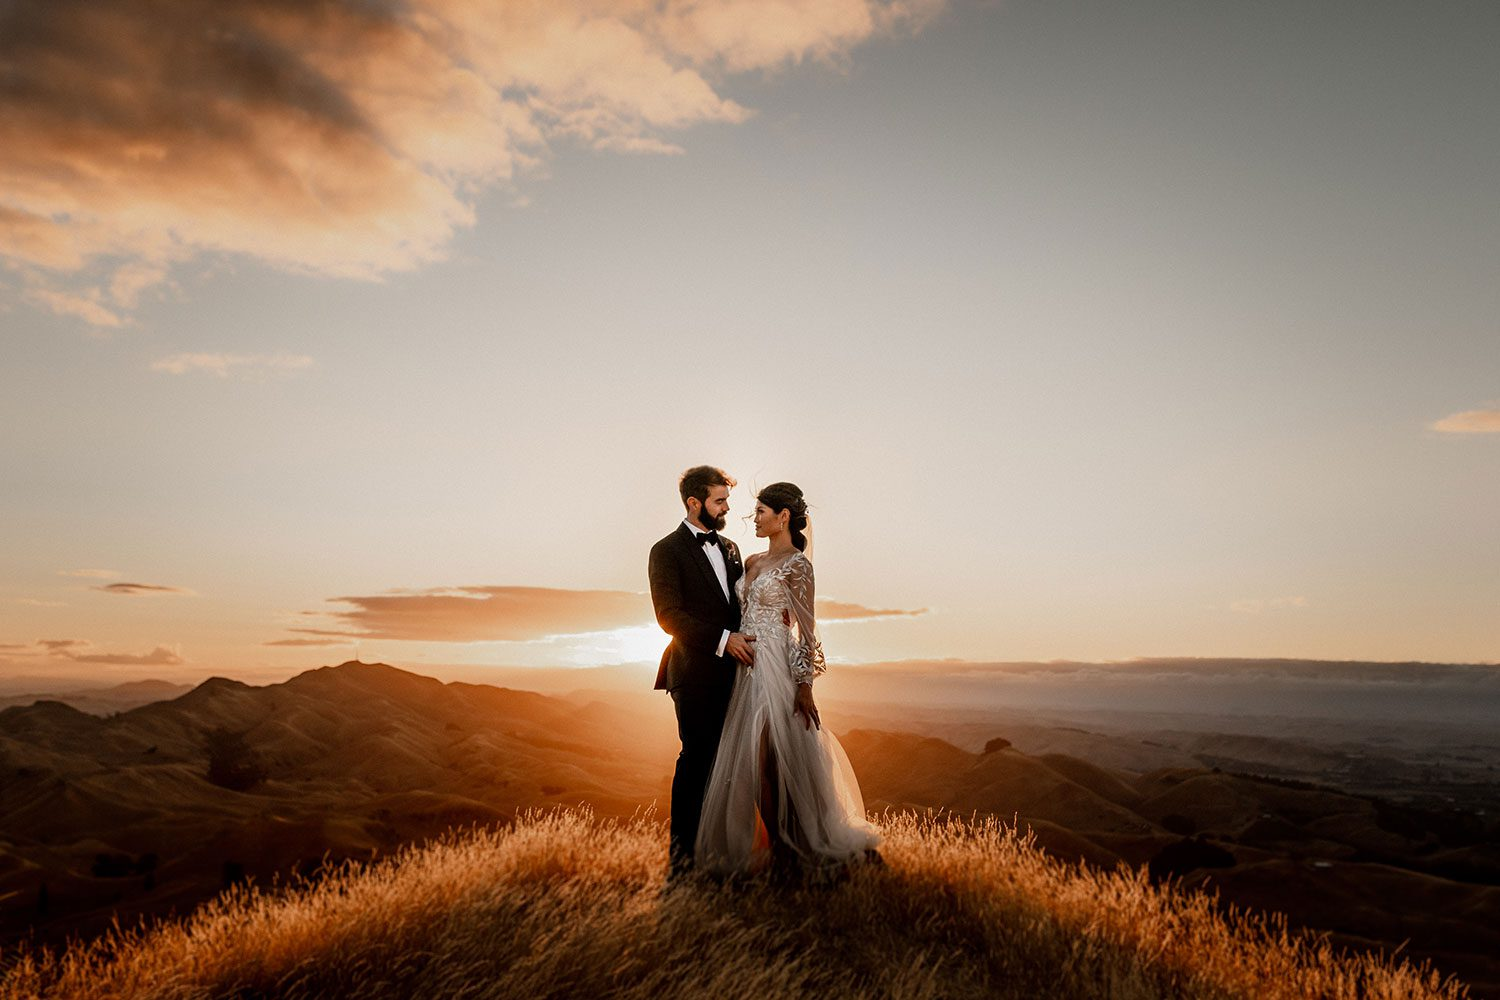 Bride wearing bespoke designer wedding dress by Vinka Bridal Boutique NZ, adorned with delicate applique lace and puffed sleeves - profile on hill